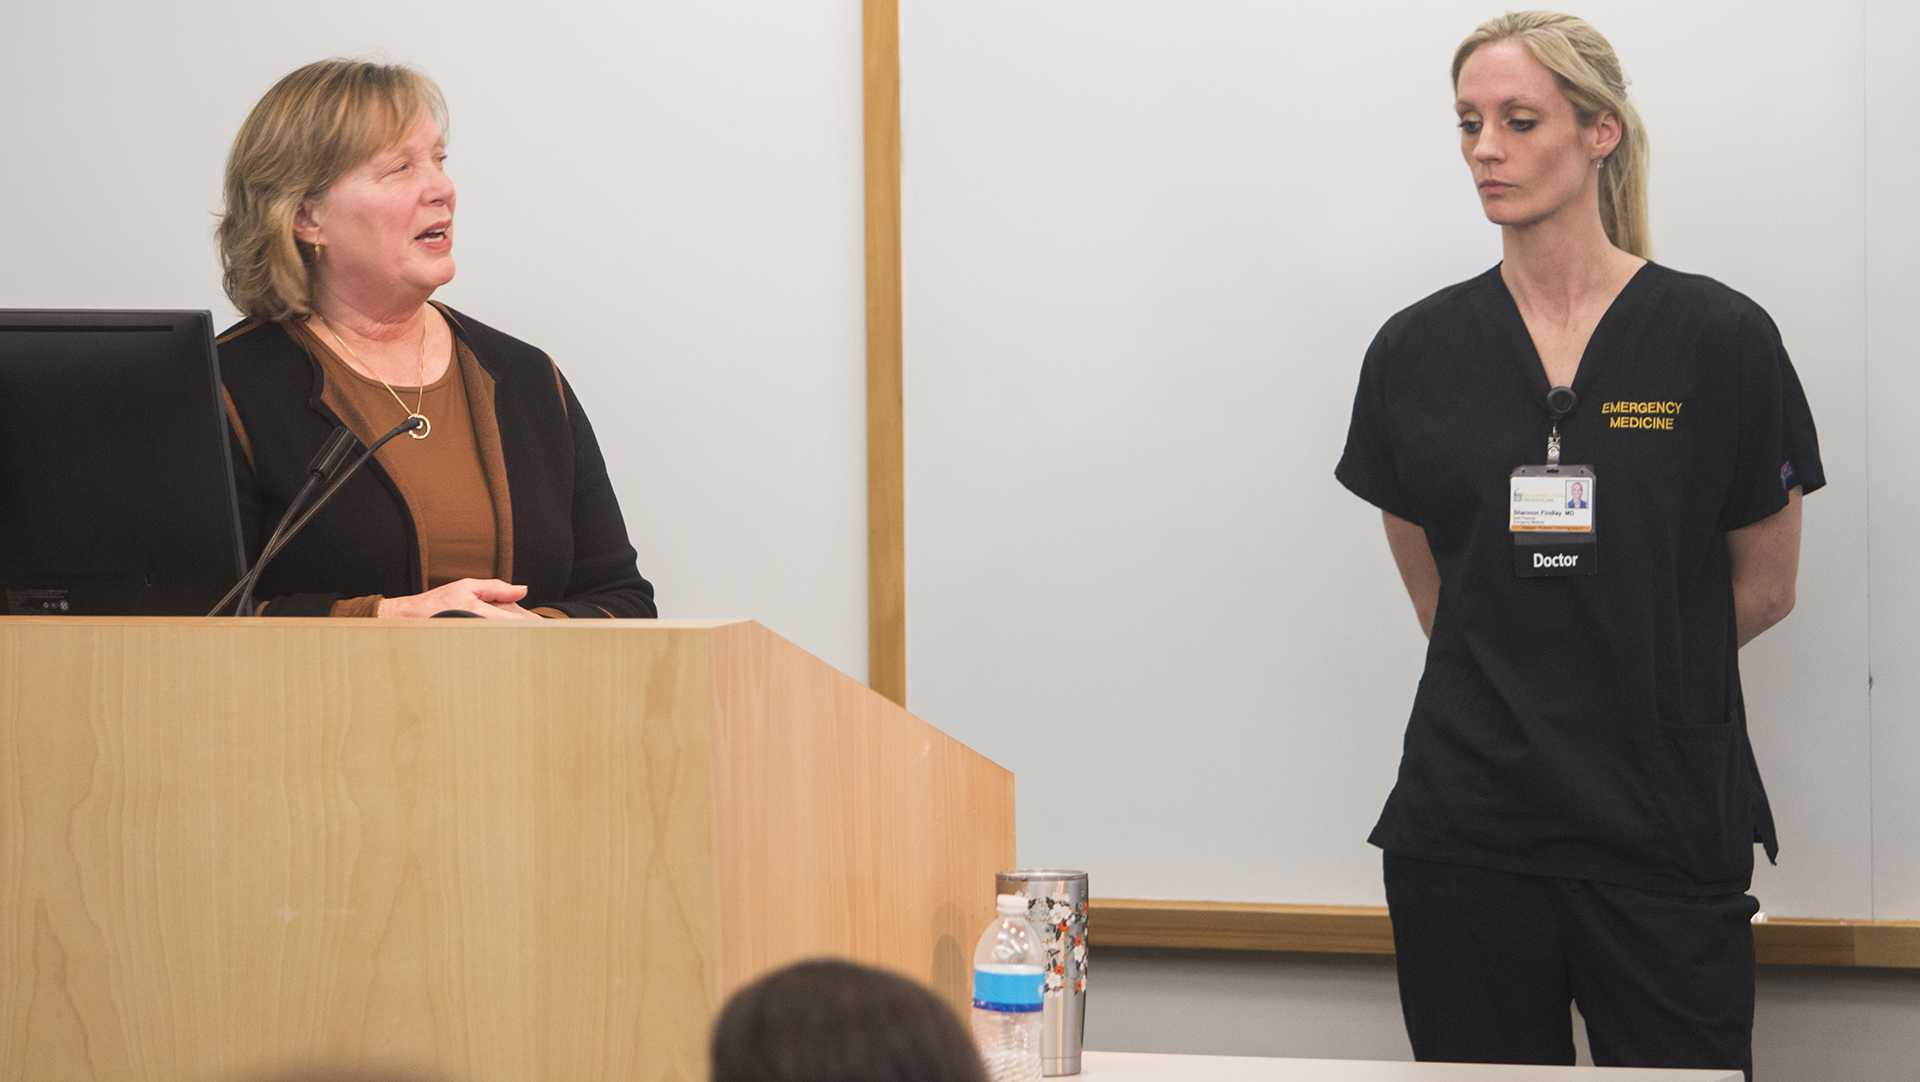 Pamela Terrill, NP (left) and Shannon Findlay, MD (right) answer questions during Human Trafficking: Be Prepared to Intervene at the Carver College of Medicine on March 26, 2018. The event covered ways to identify human trafficking and how healthcare providers can intervene. (Katina Zentz/The Daily Iowan)